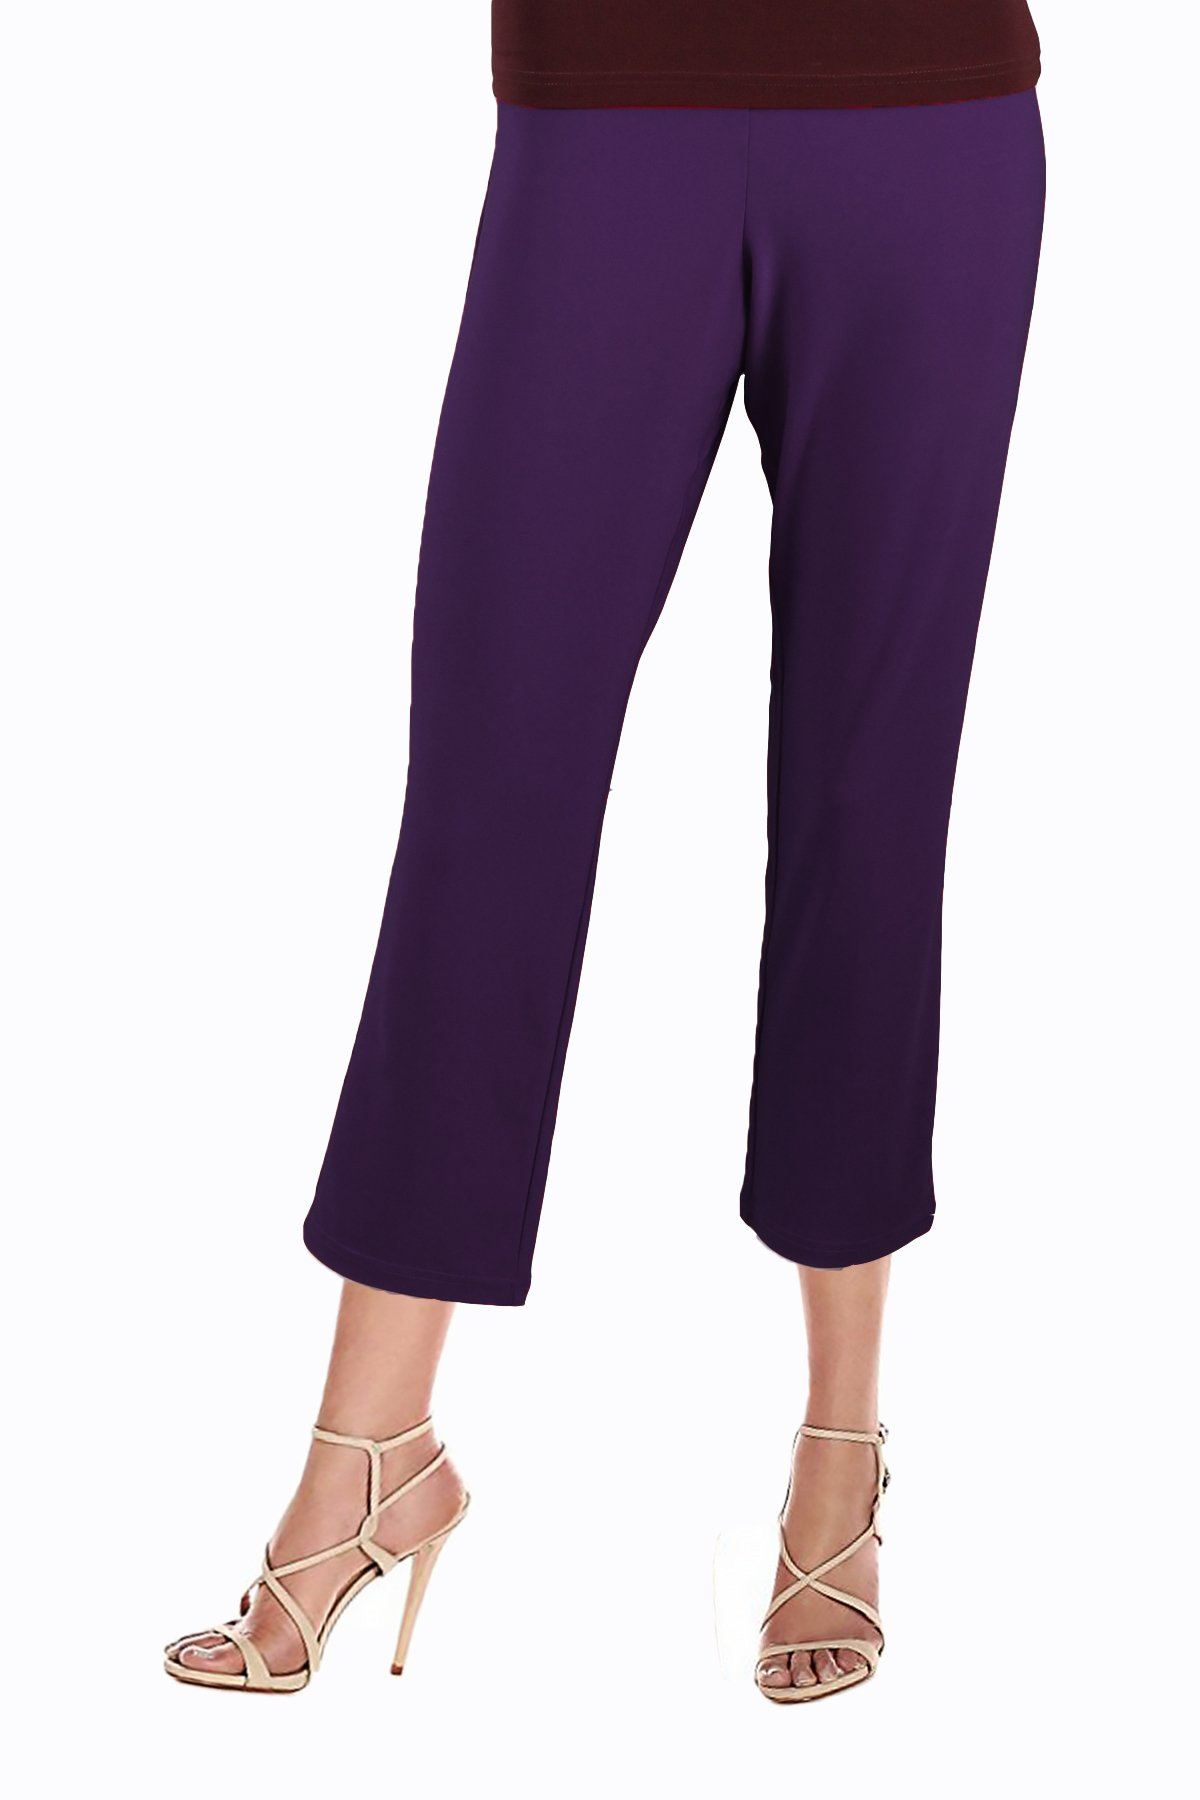 Women's Purple 3/4 Capri Pants Rosarini